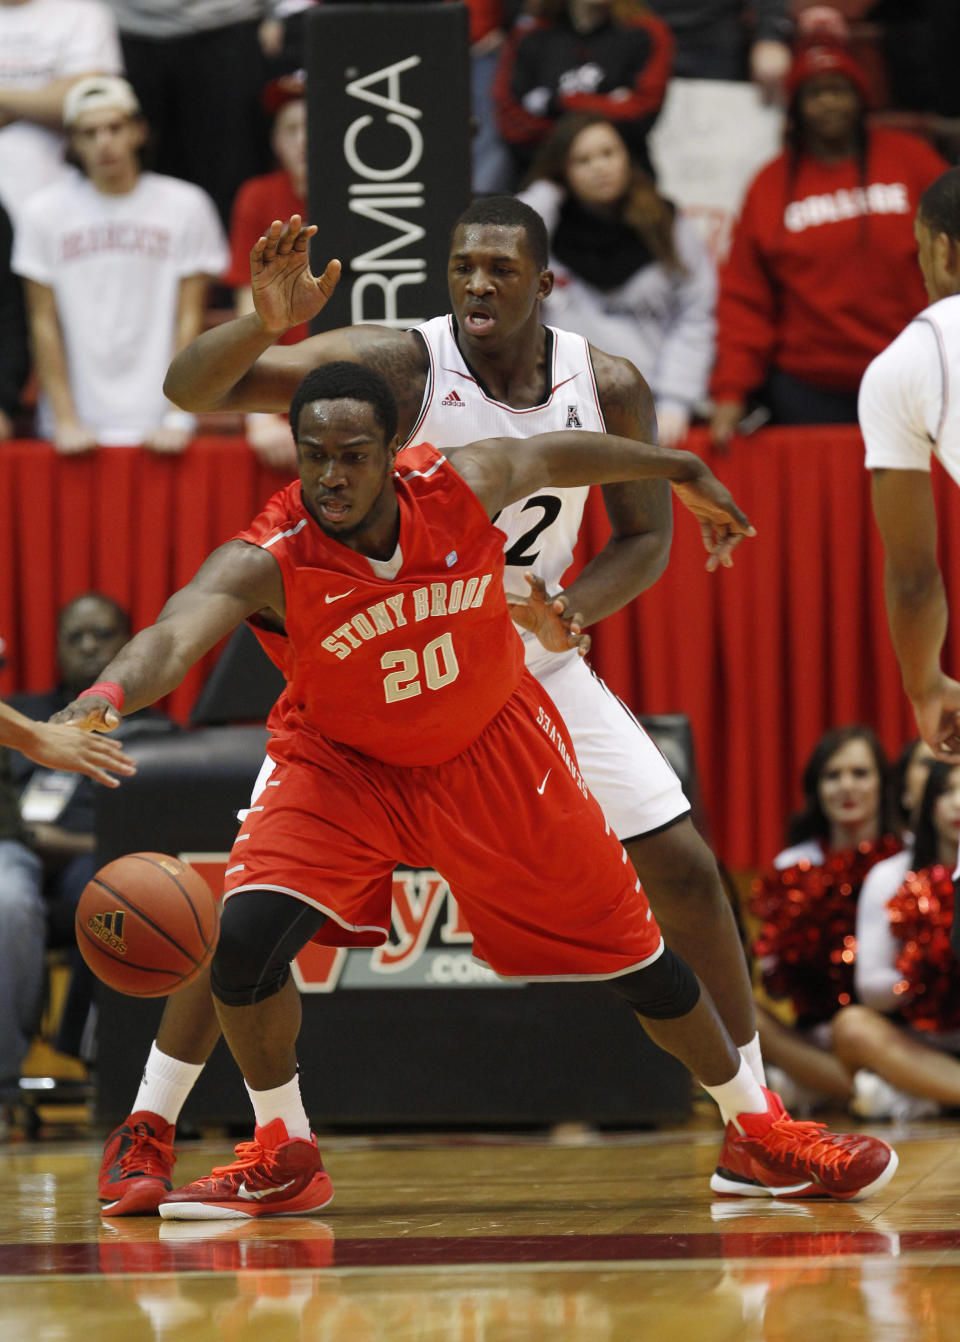 Stony Brook forward Jameel Warney (20) goes after the ball while being covered by Cincinnati center Coreontae DeBerry (22) in the first half of an NCAA college basketball game, Tuesday, Dec. 2, 2014, in Cincinnati. (AP Photo/Frank Victores)